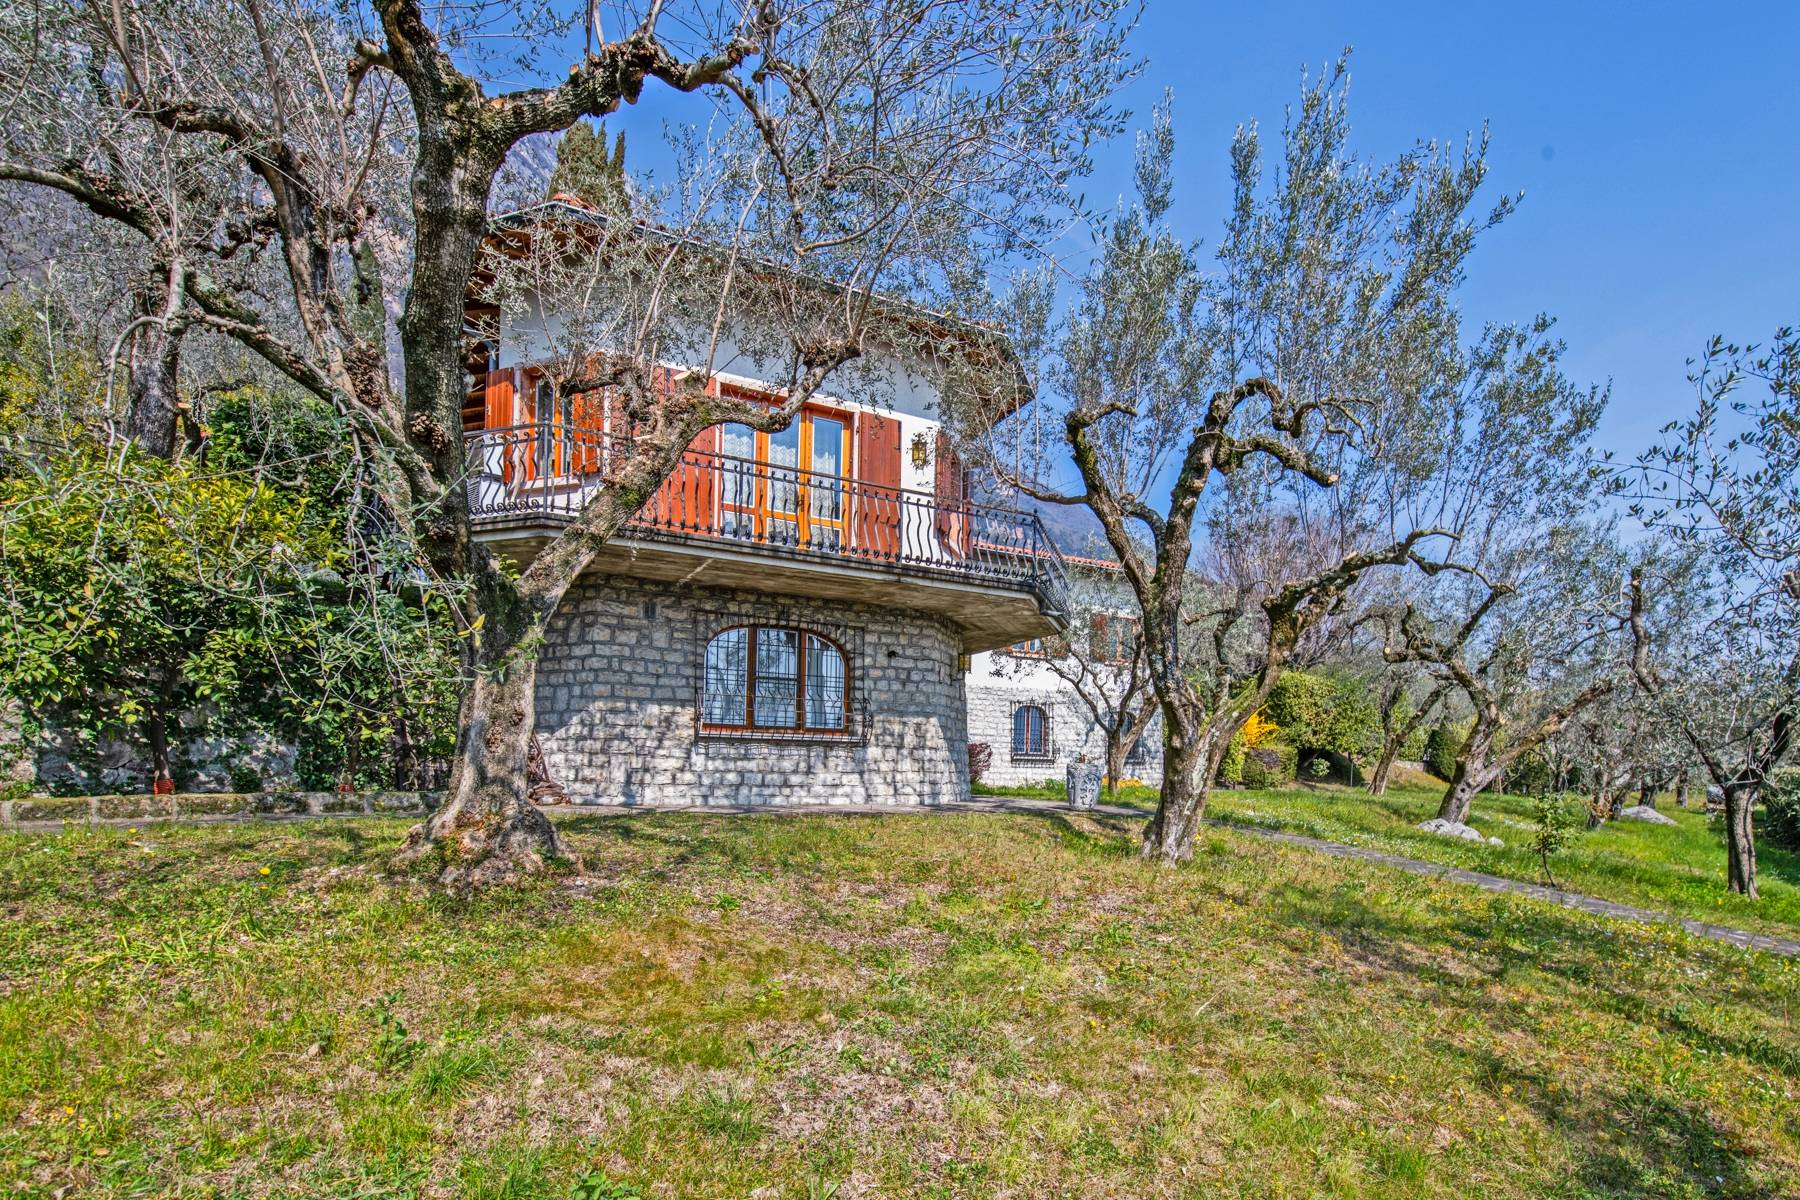 Villa with lake view in Gargnano surrounded by olive trees - 28